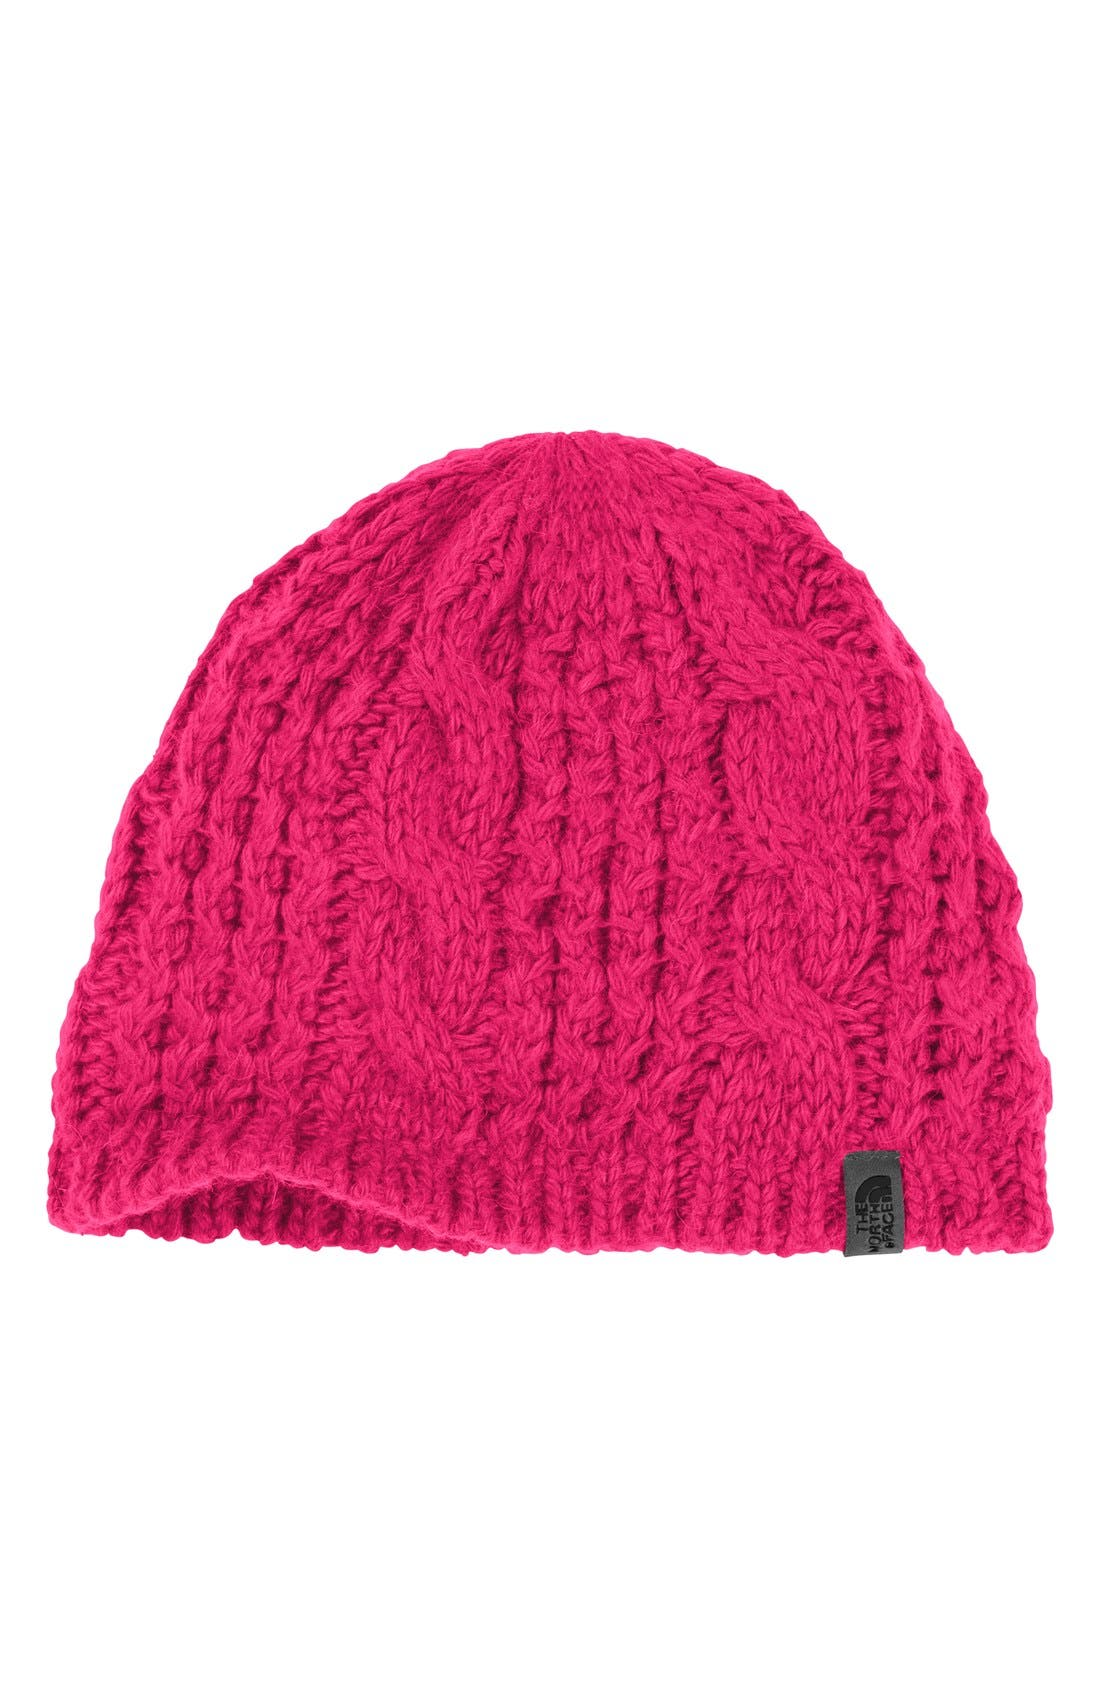 'Minna' Cable Knit Beanie,                             Main thumbnail 15, color,